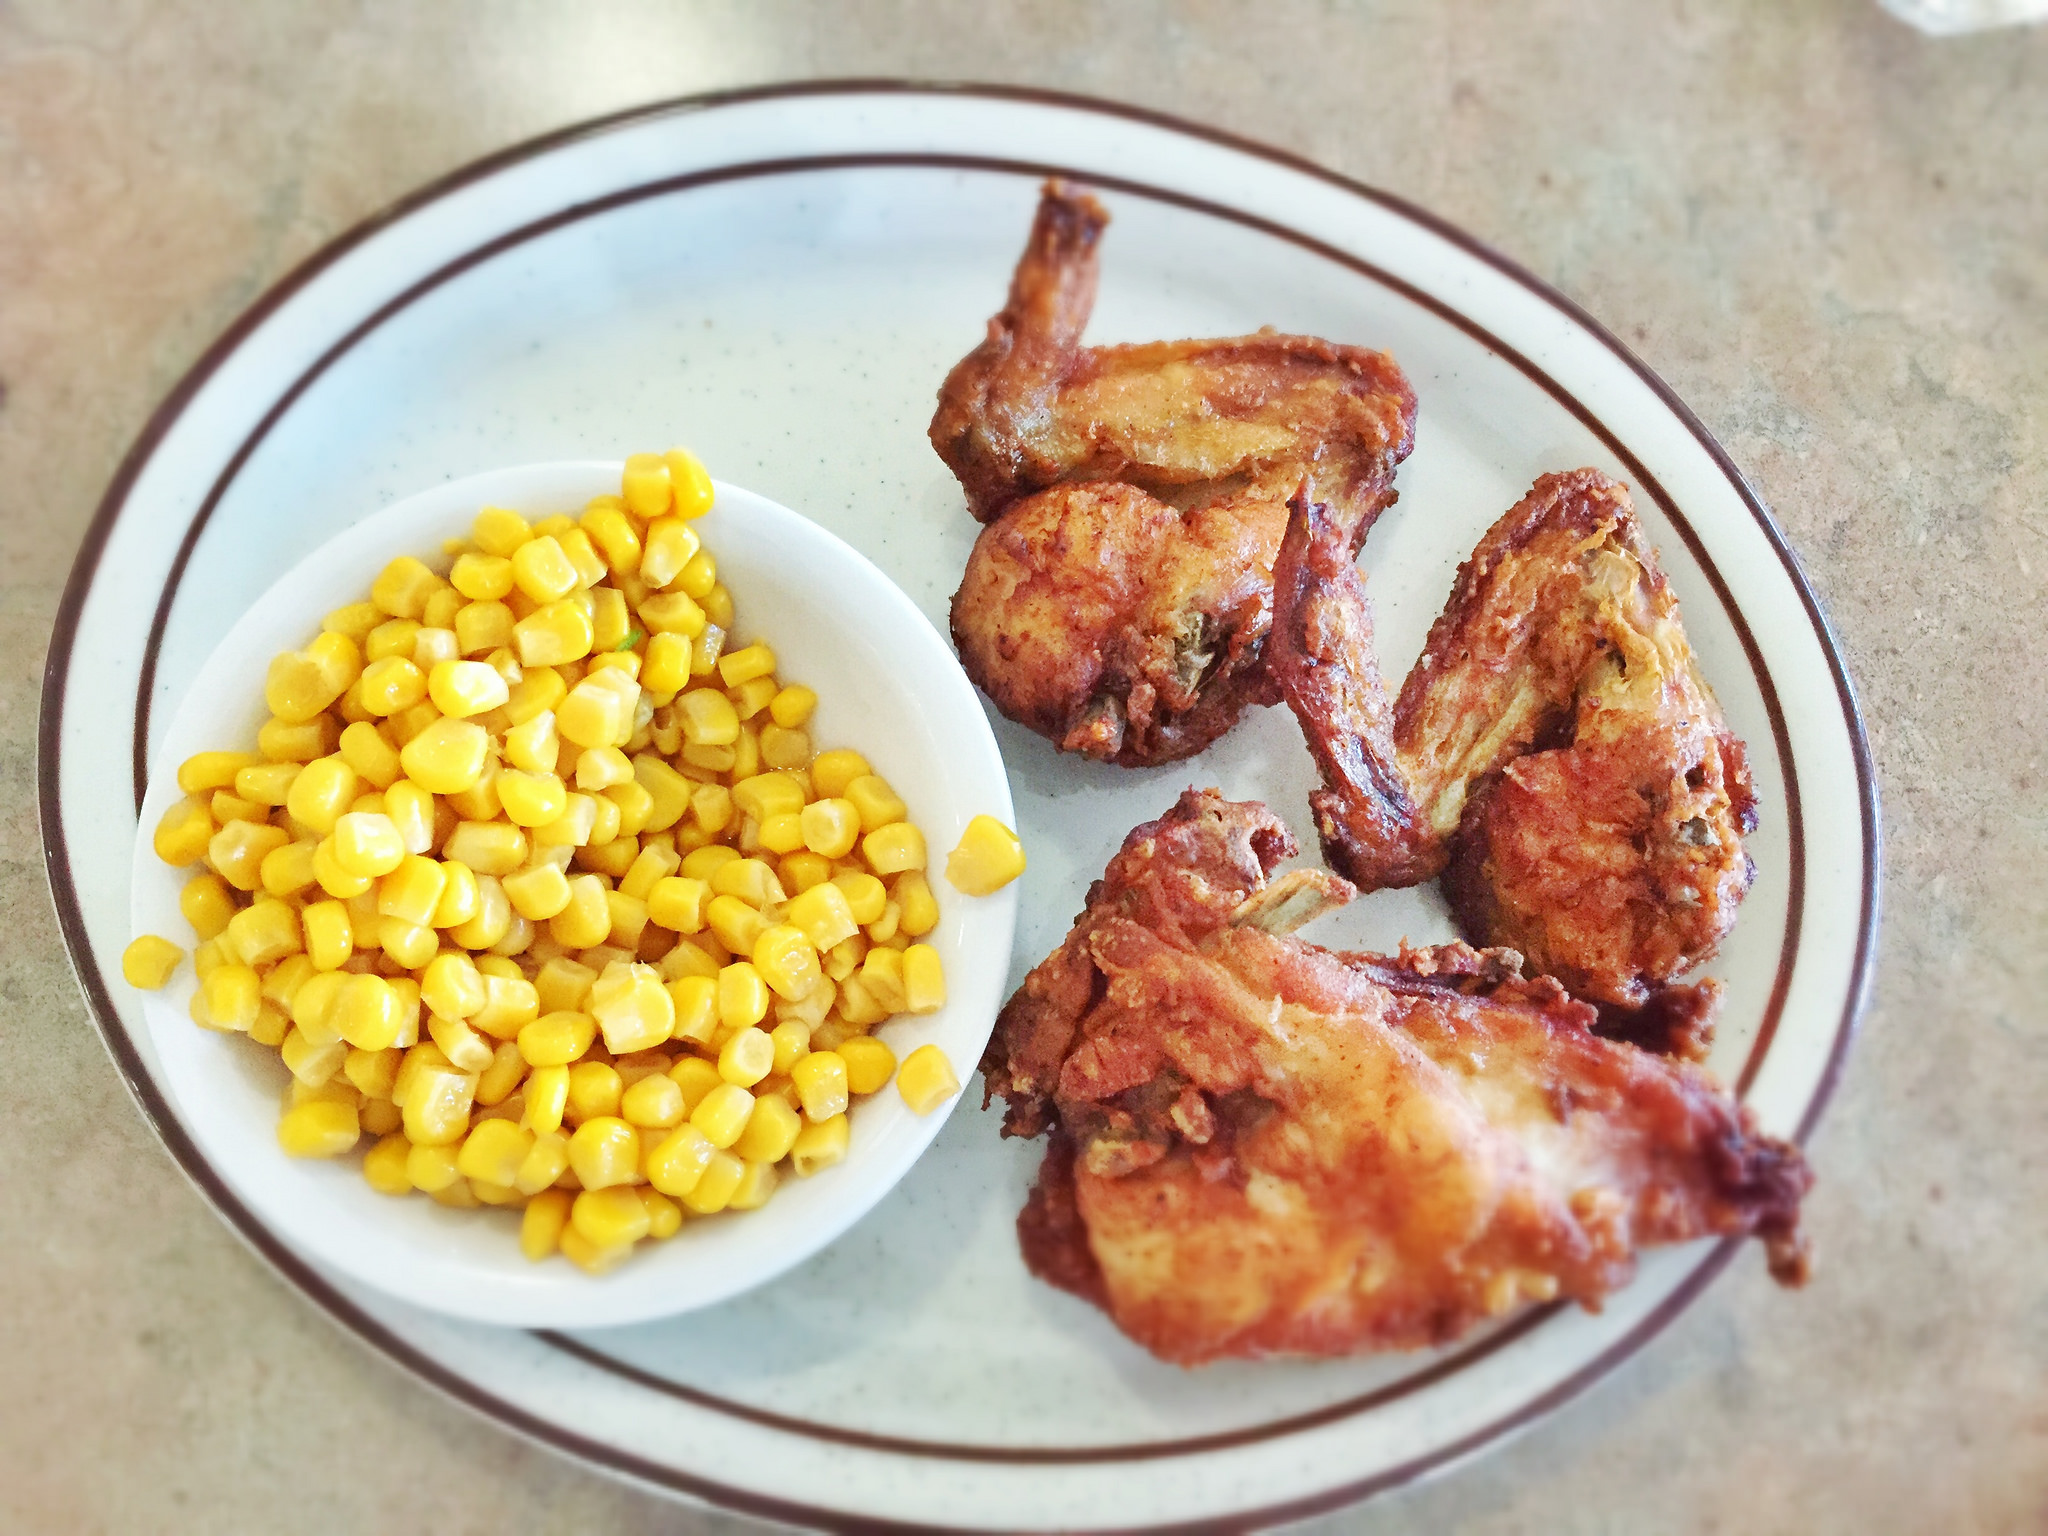 Fried Chicken and Corn at Dinah's | ©T.Tseng/Flickr